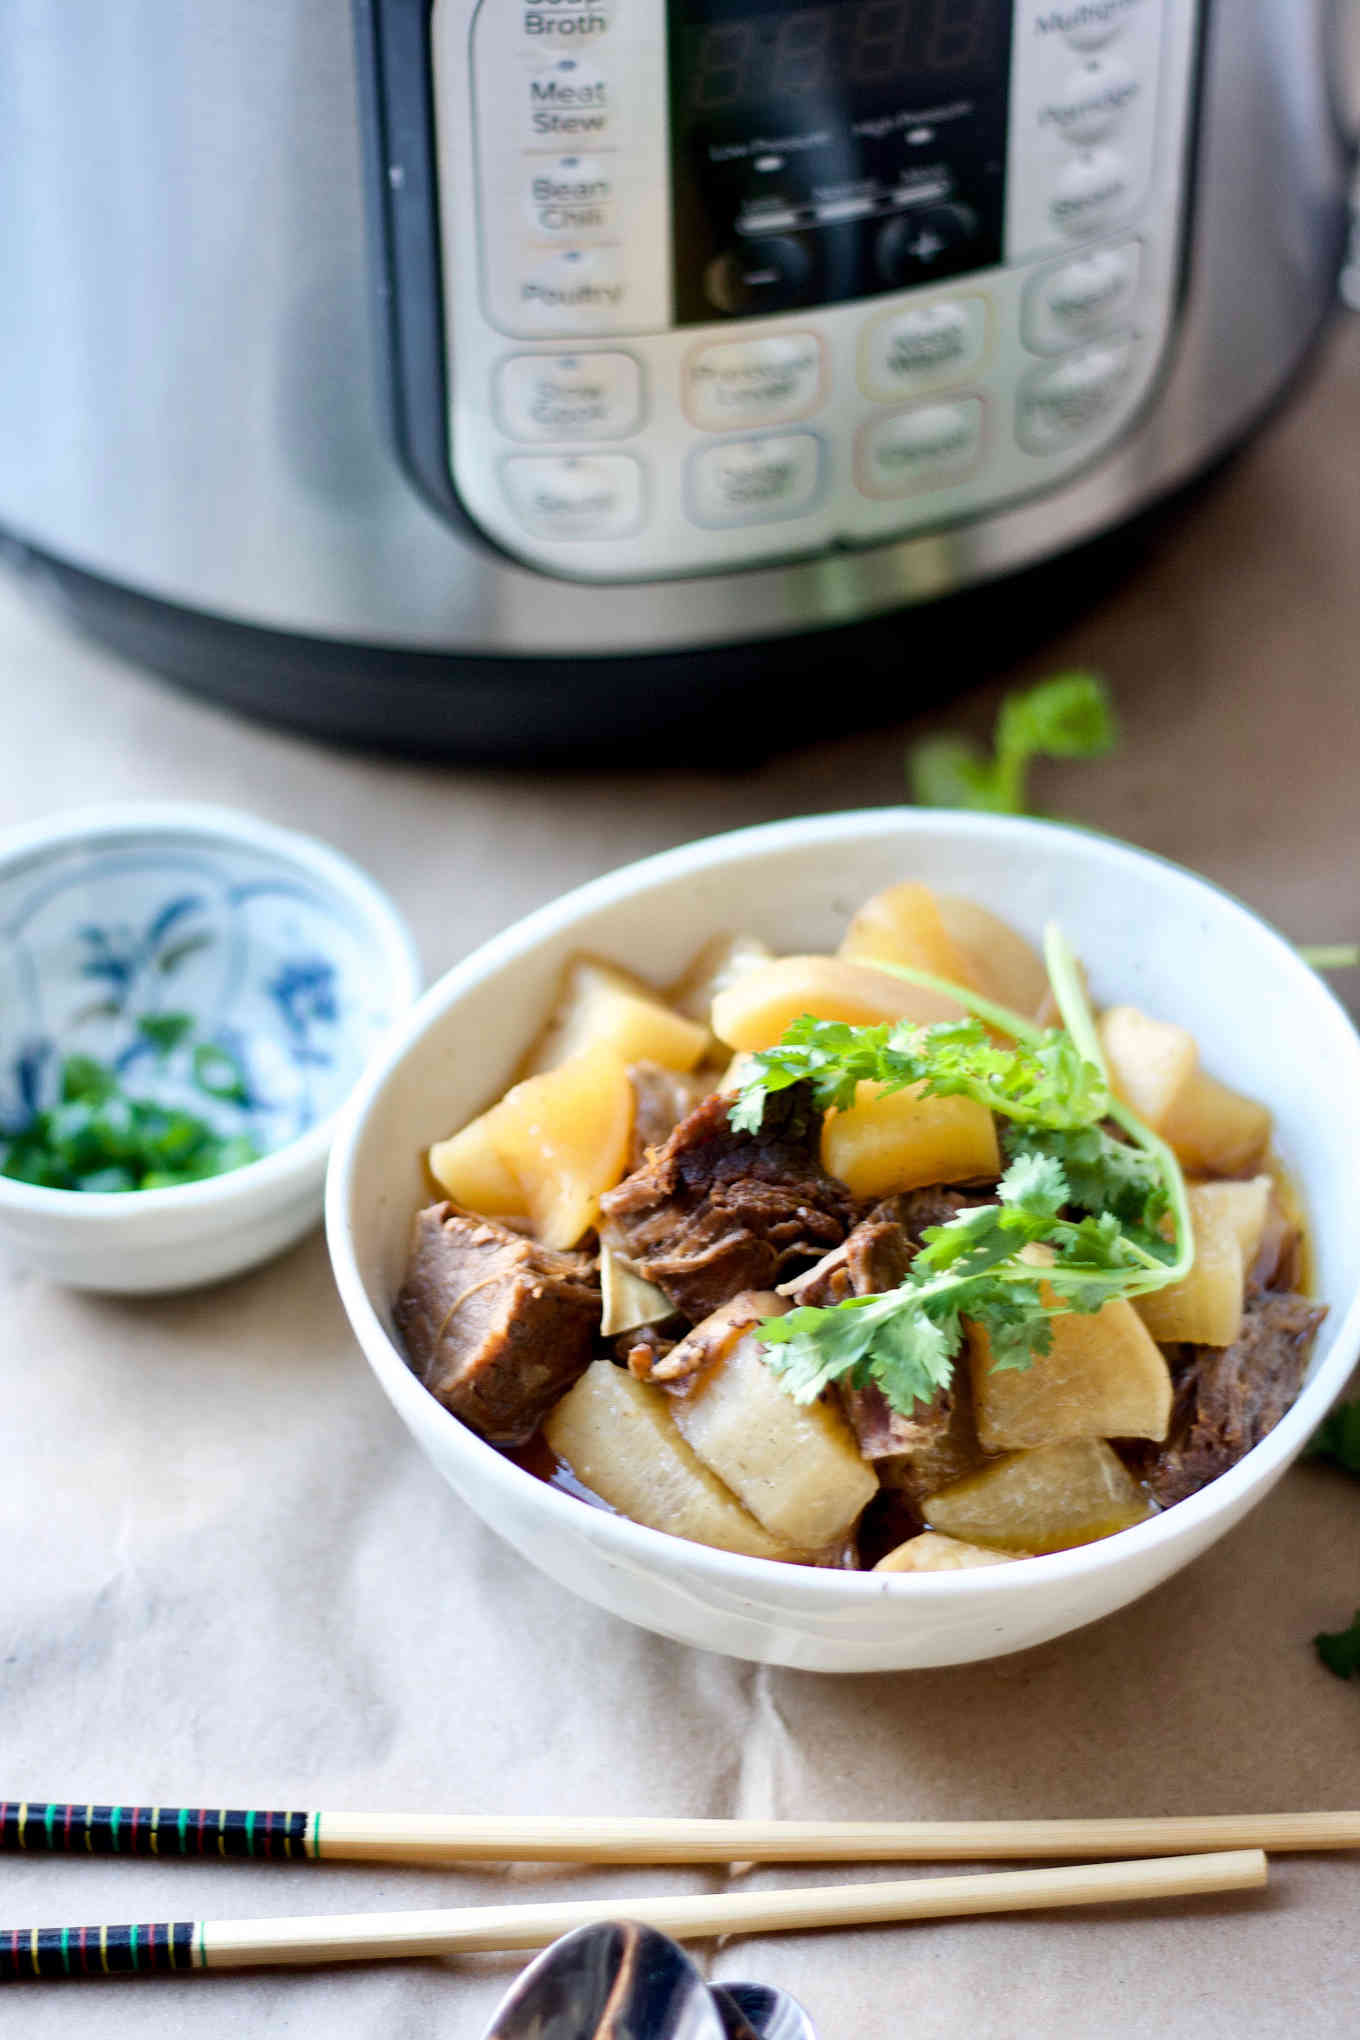 Instant Pot beef brisket stew with daikon radish, served in a bowl, beside the instant pot.